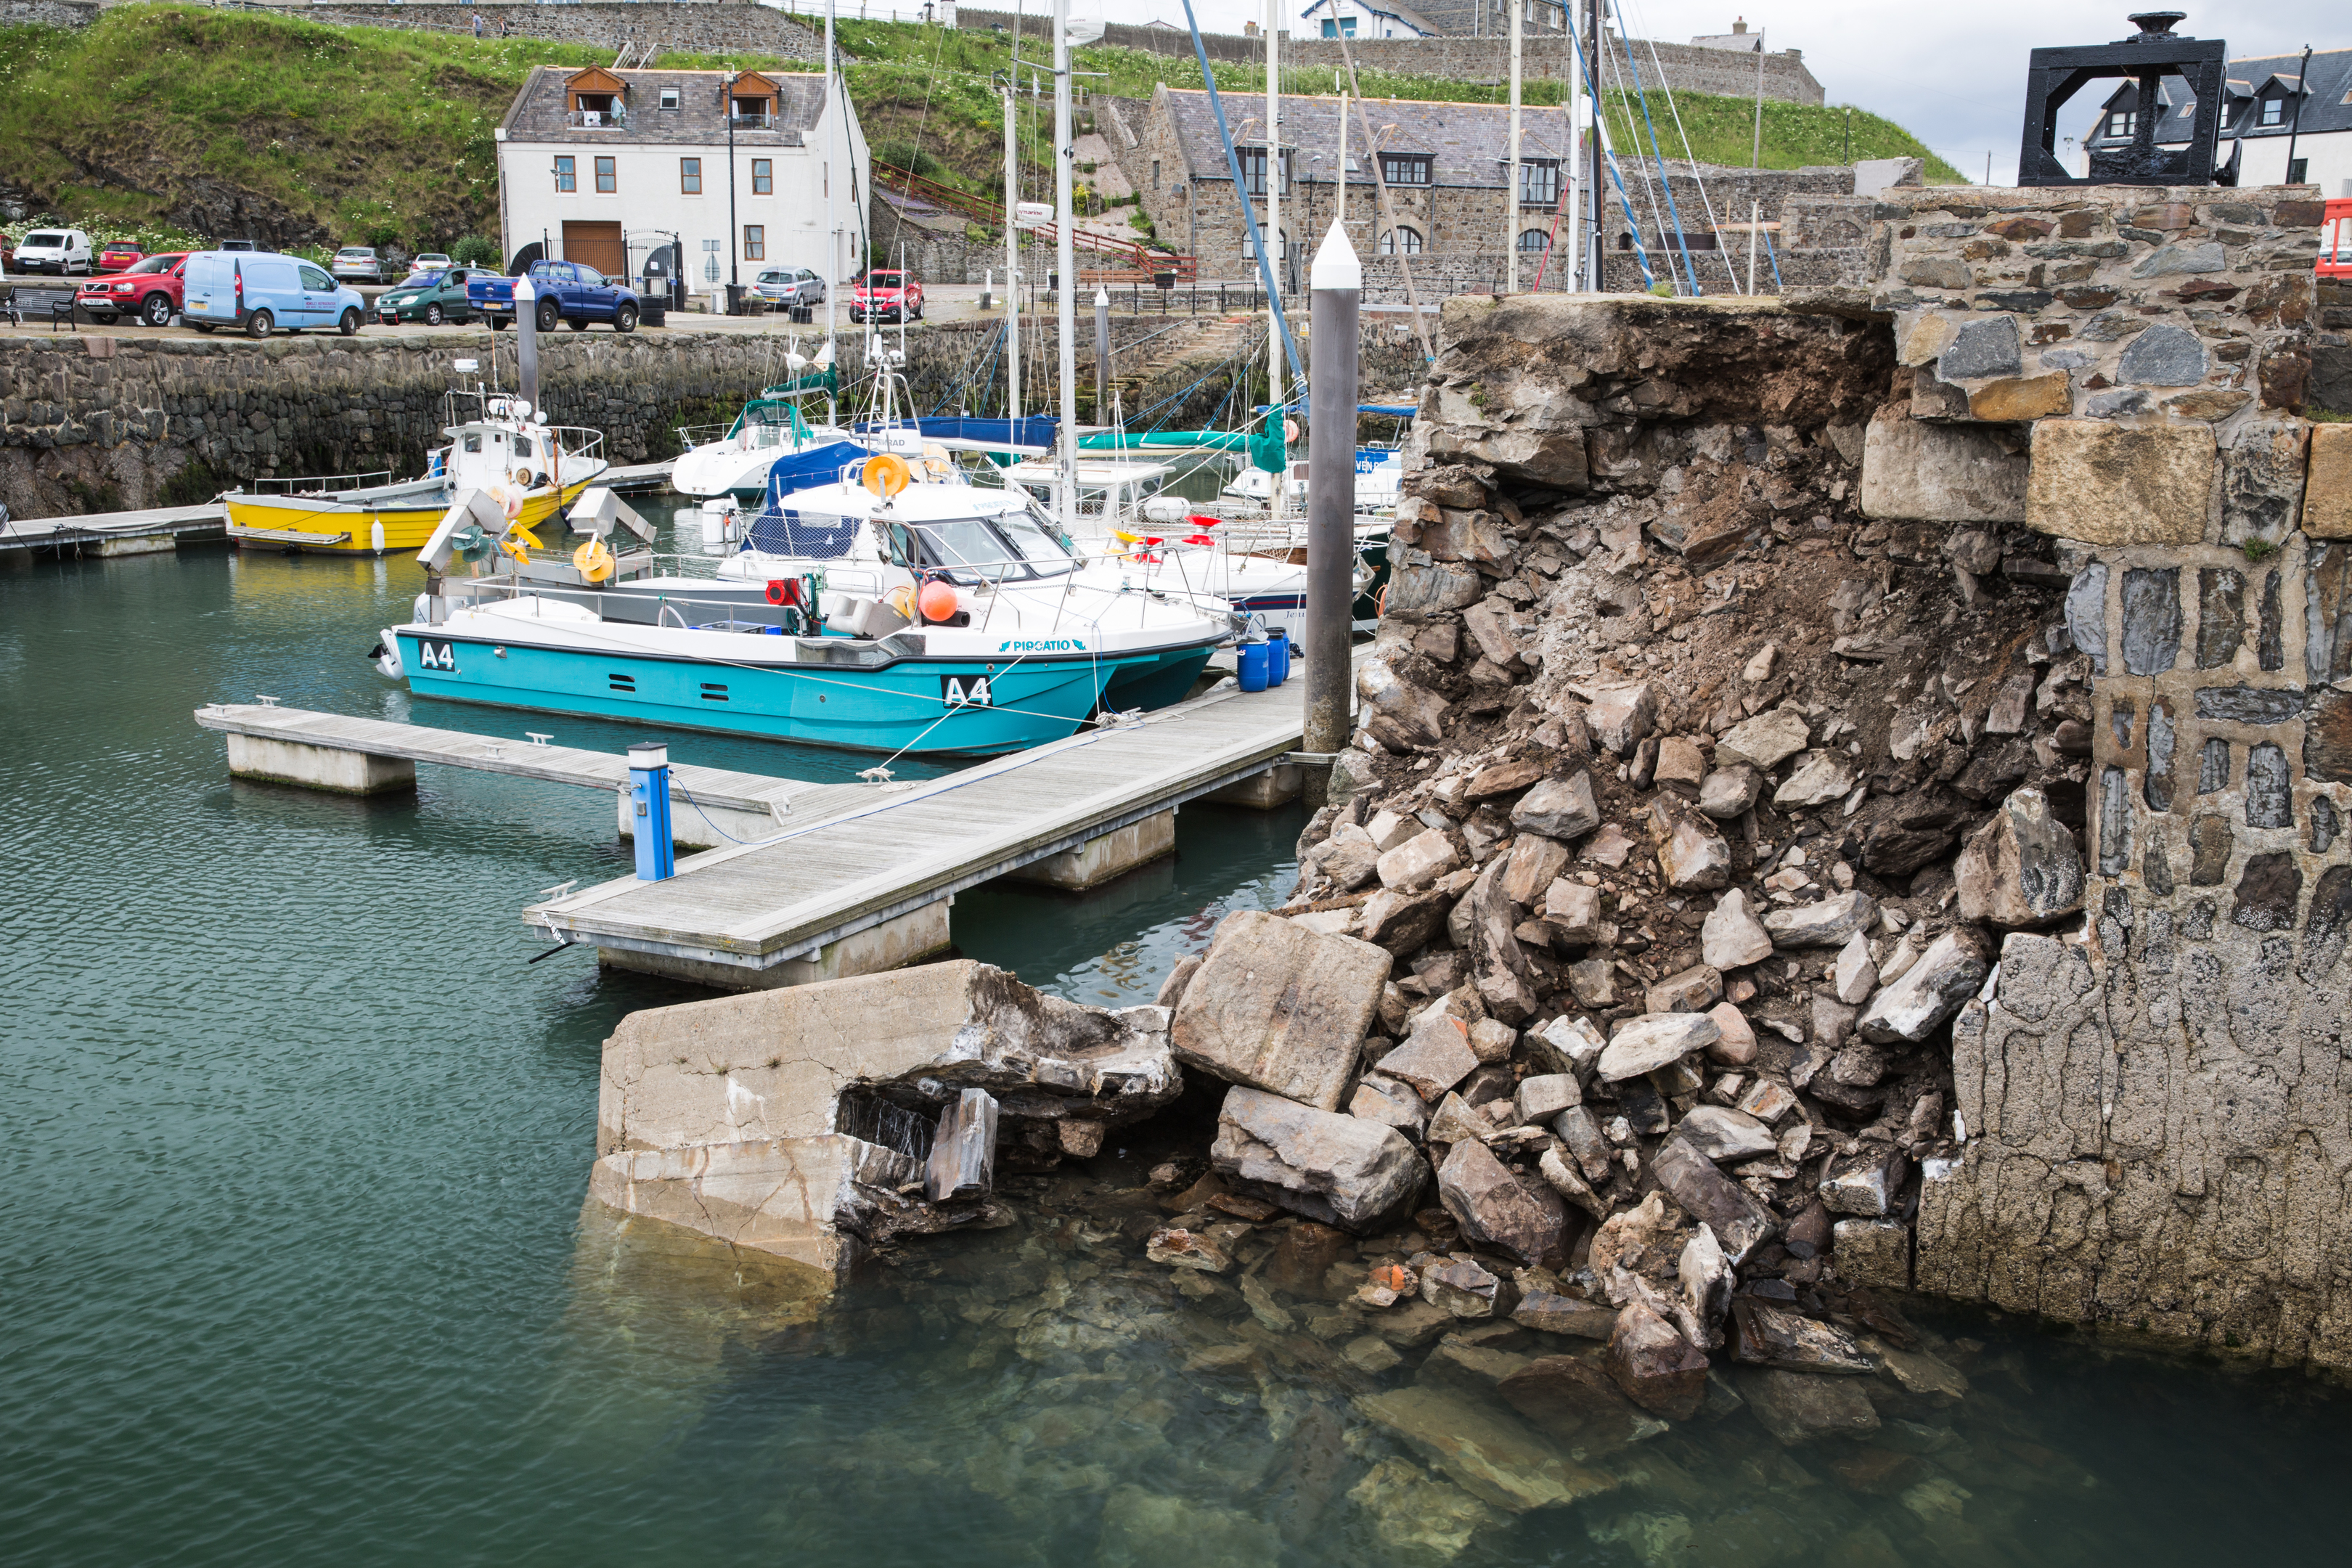 A section of the pier at Banff Harbour first collapsed overnight on Friday, June 16.